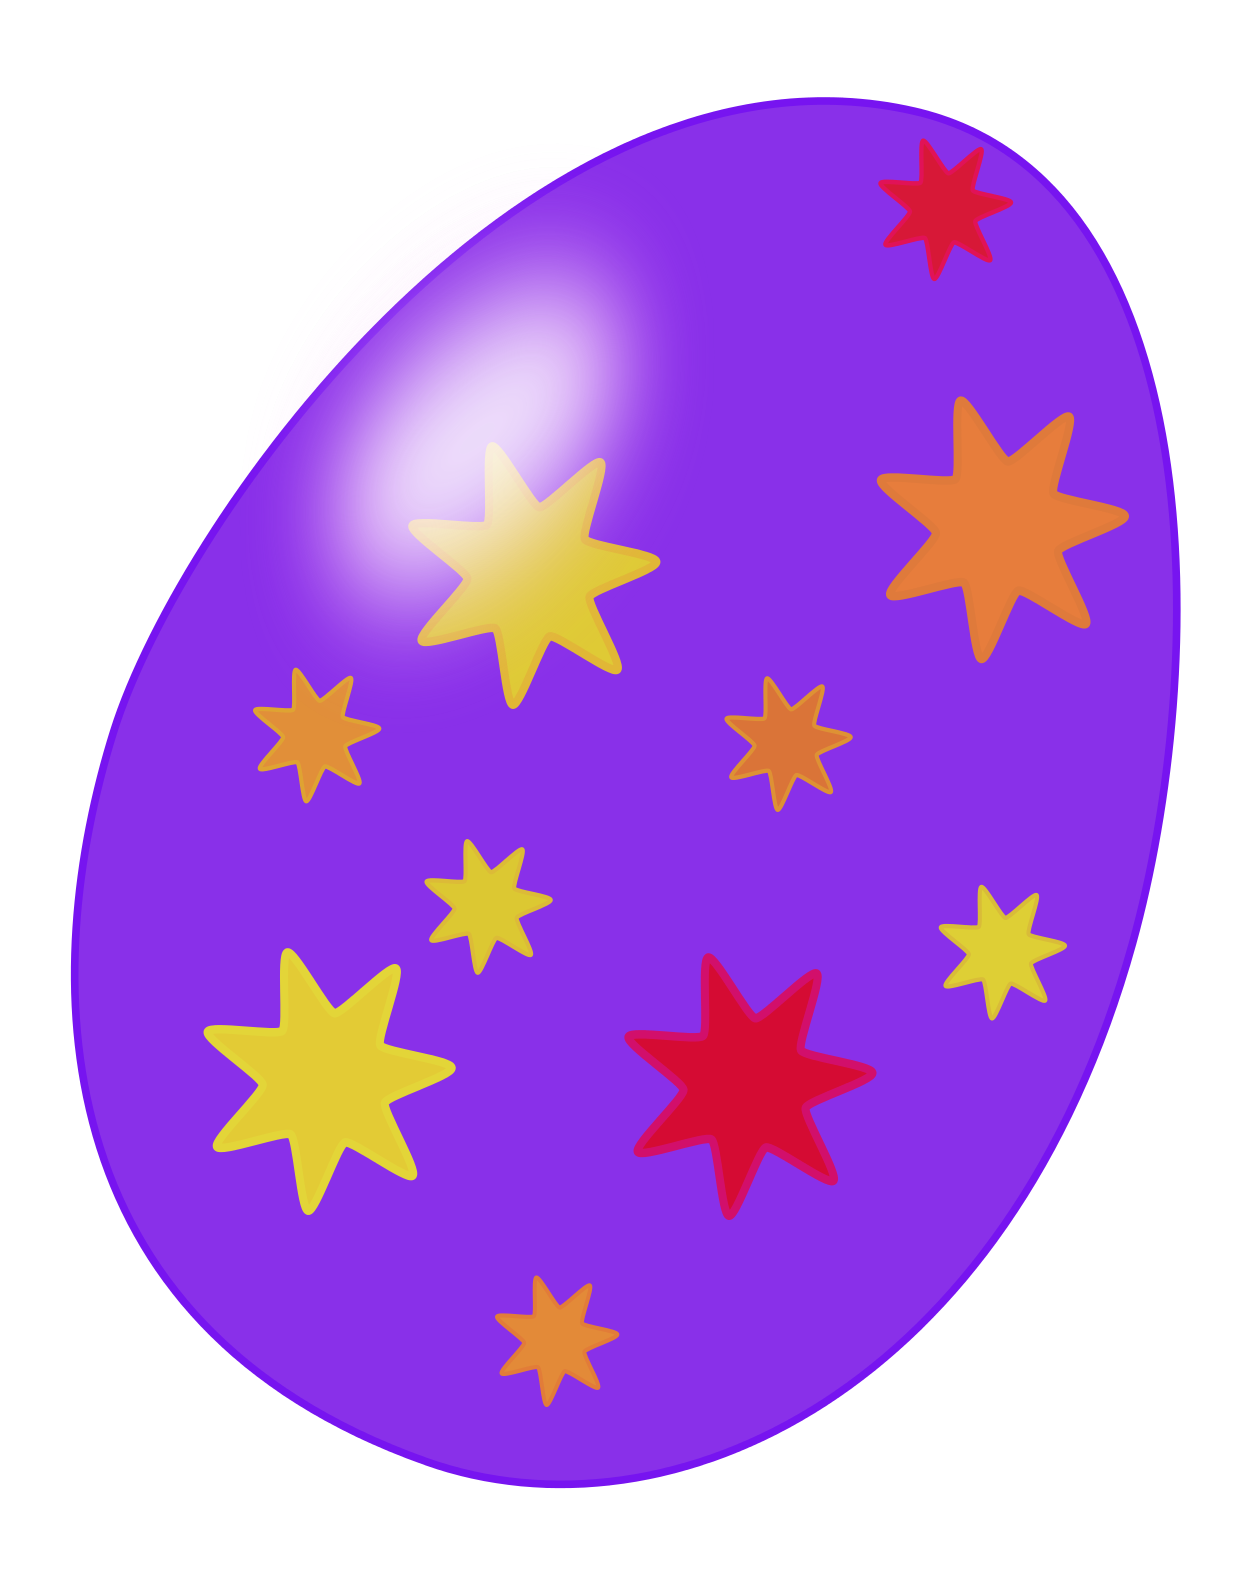 1240x1594 Easter Egg Free To Use Clip Art 2